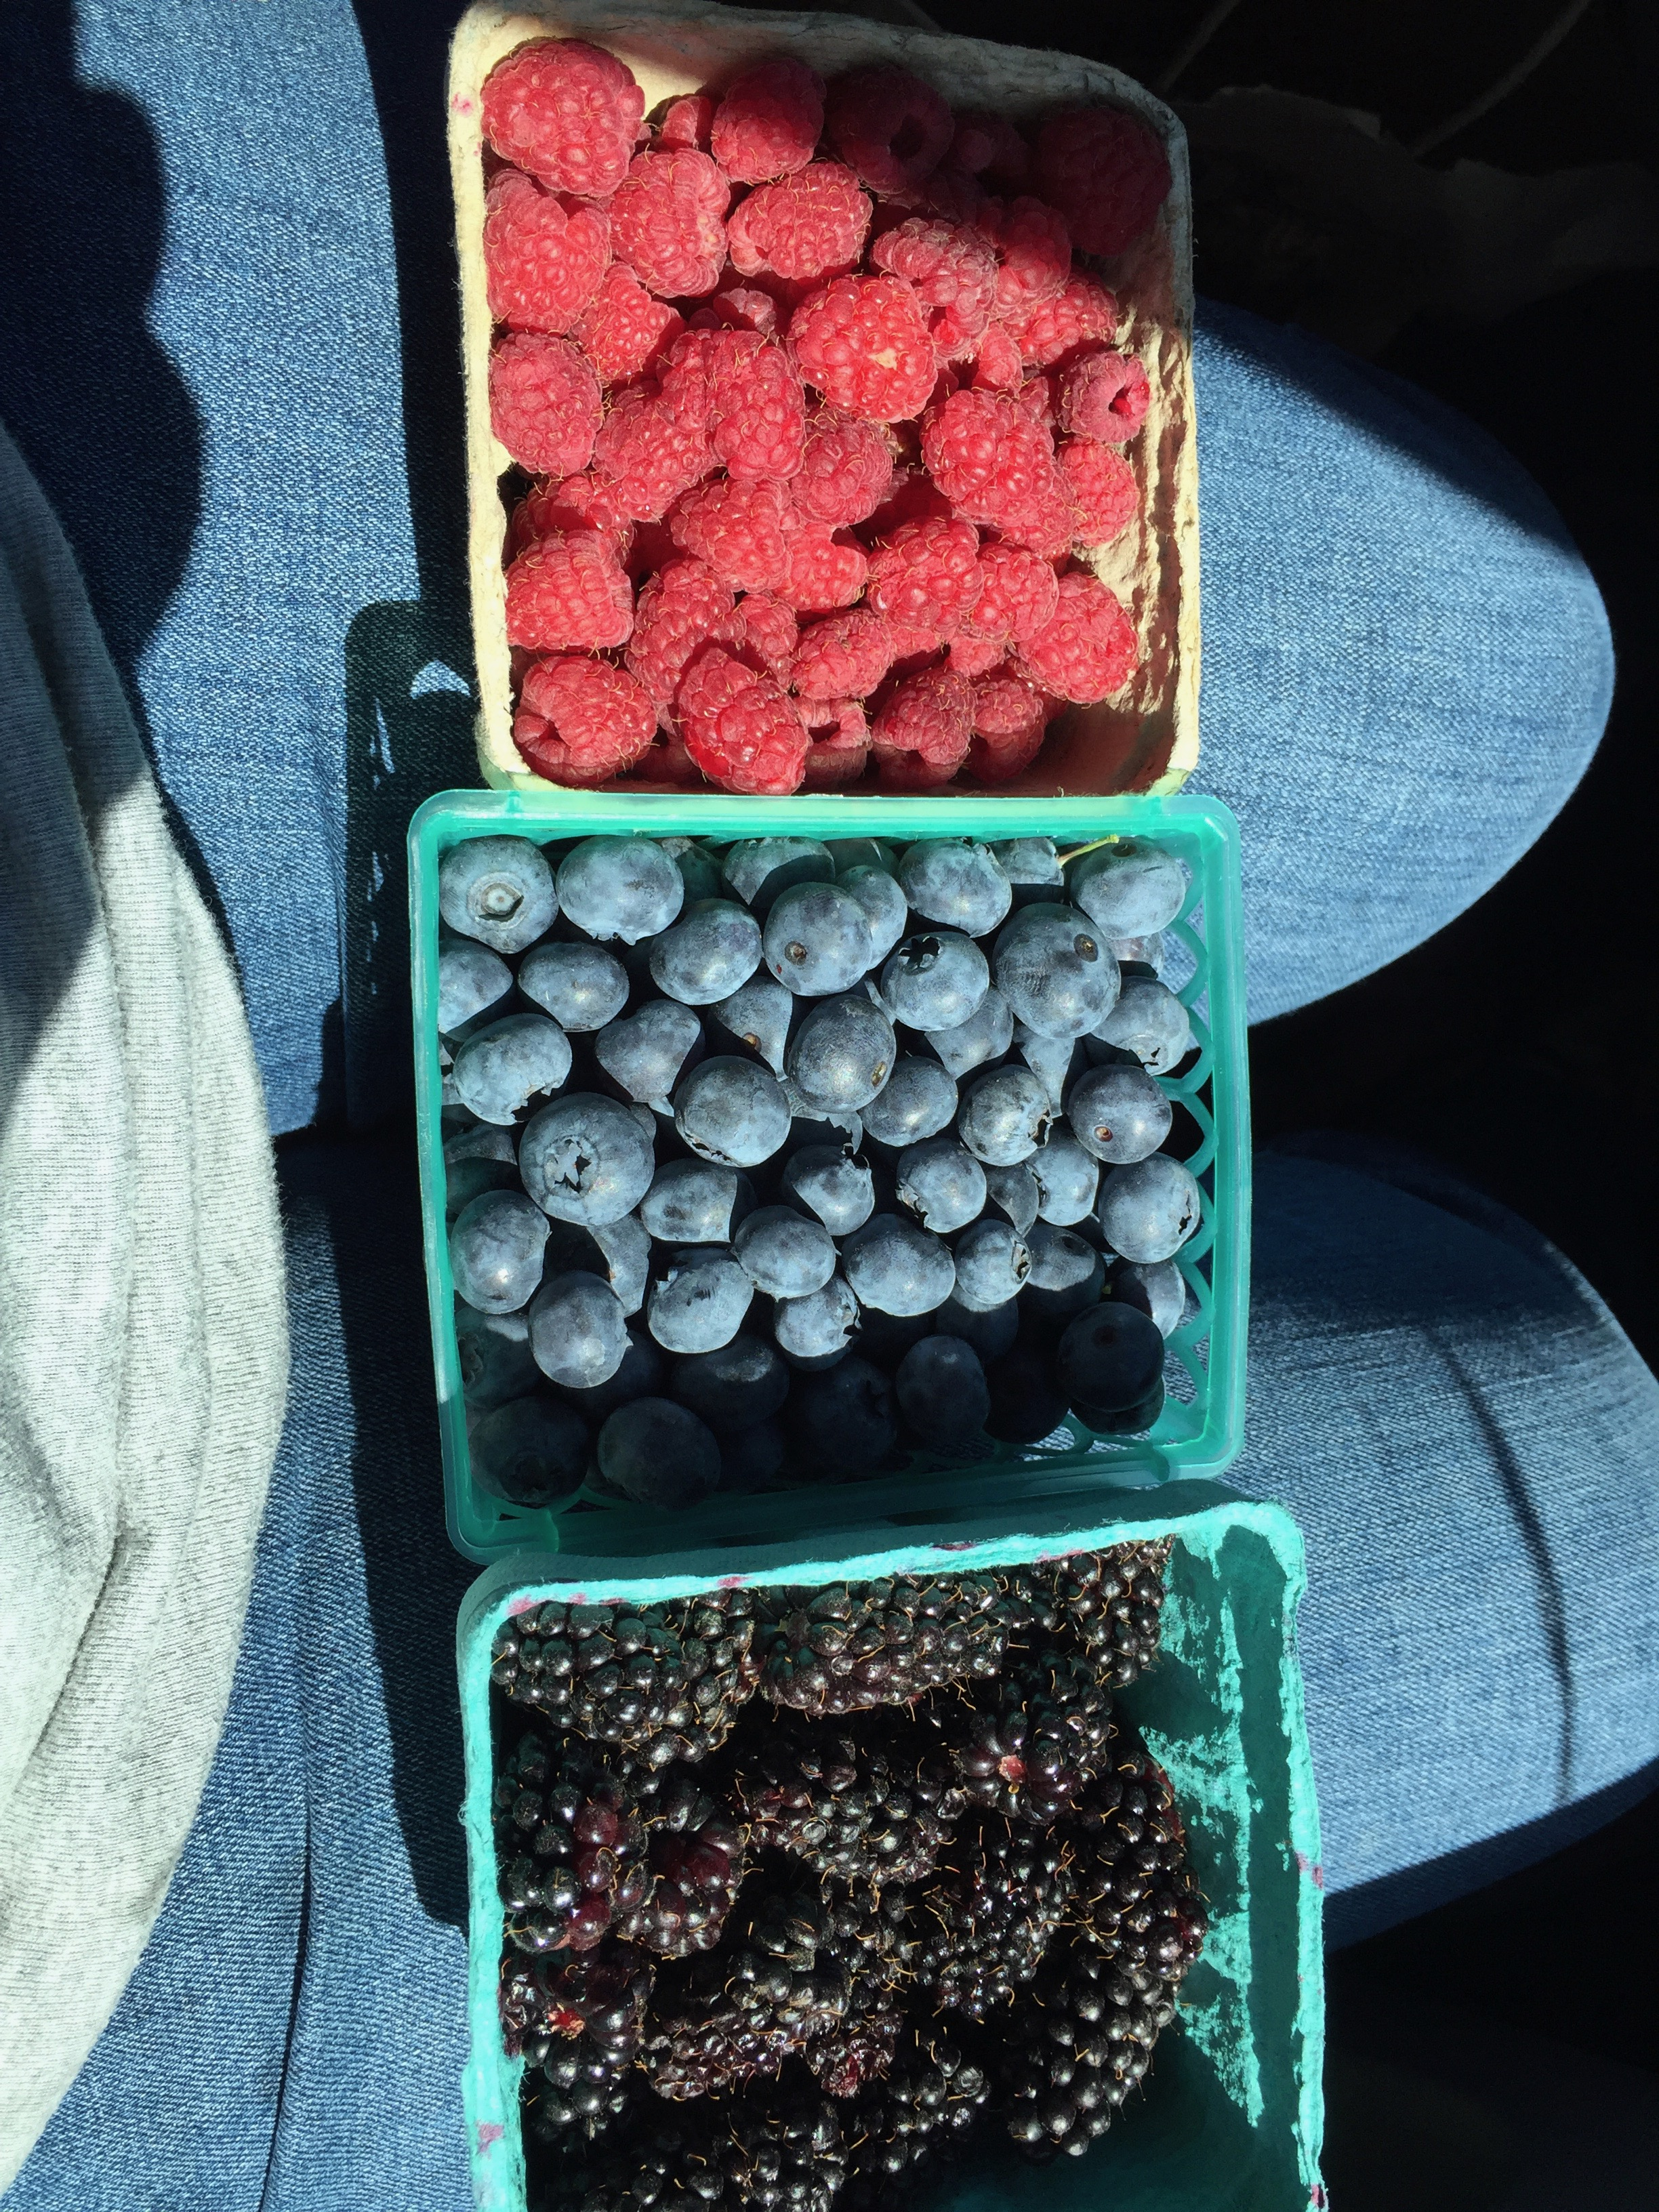 a lap full of berries